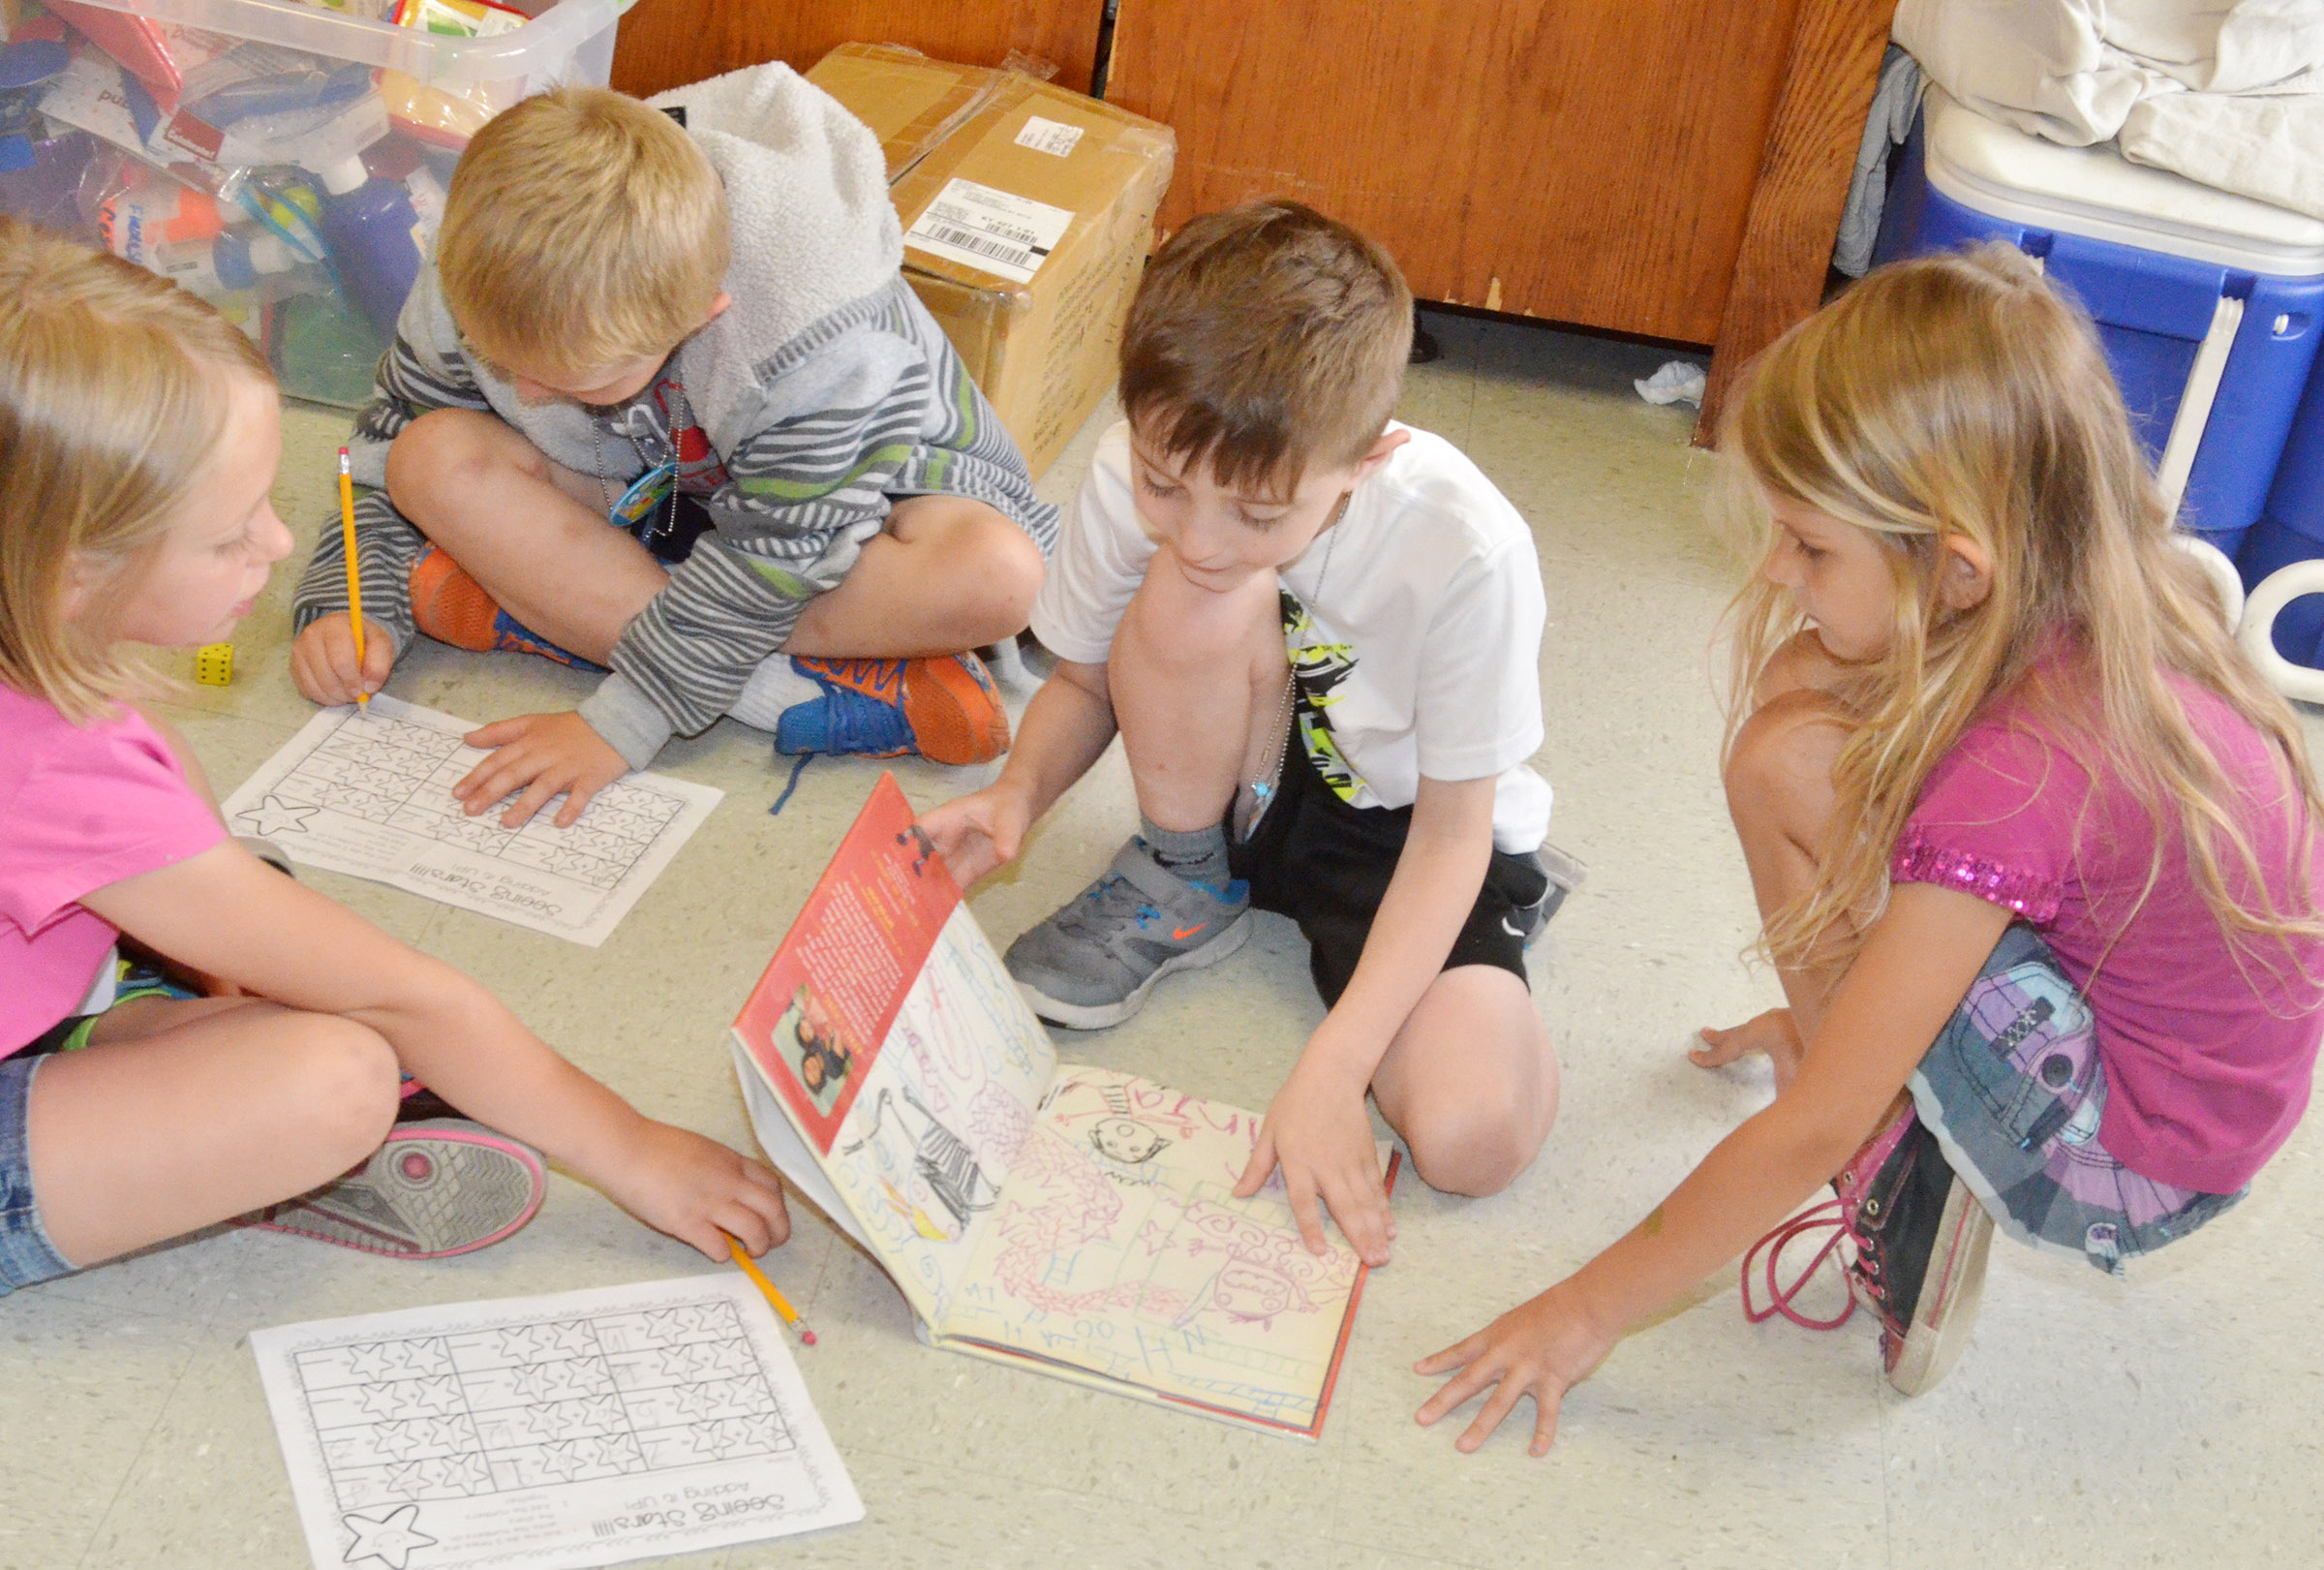 CES kindergarteners, from left, LeeAnna Garvin, Trenton Harris, Caleb Goodson and Gracie Gebler read and practice their math skills together.